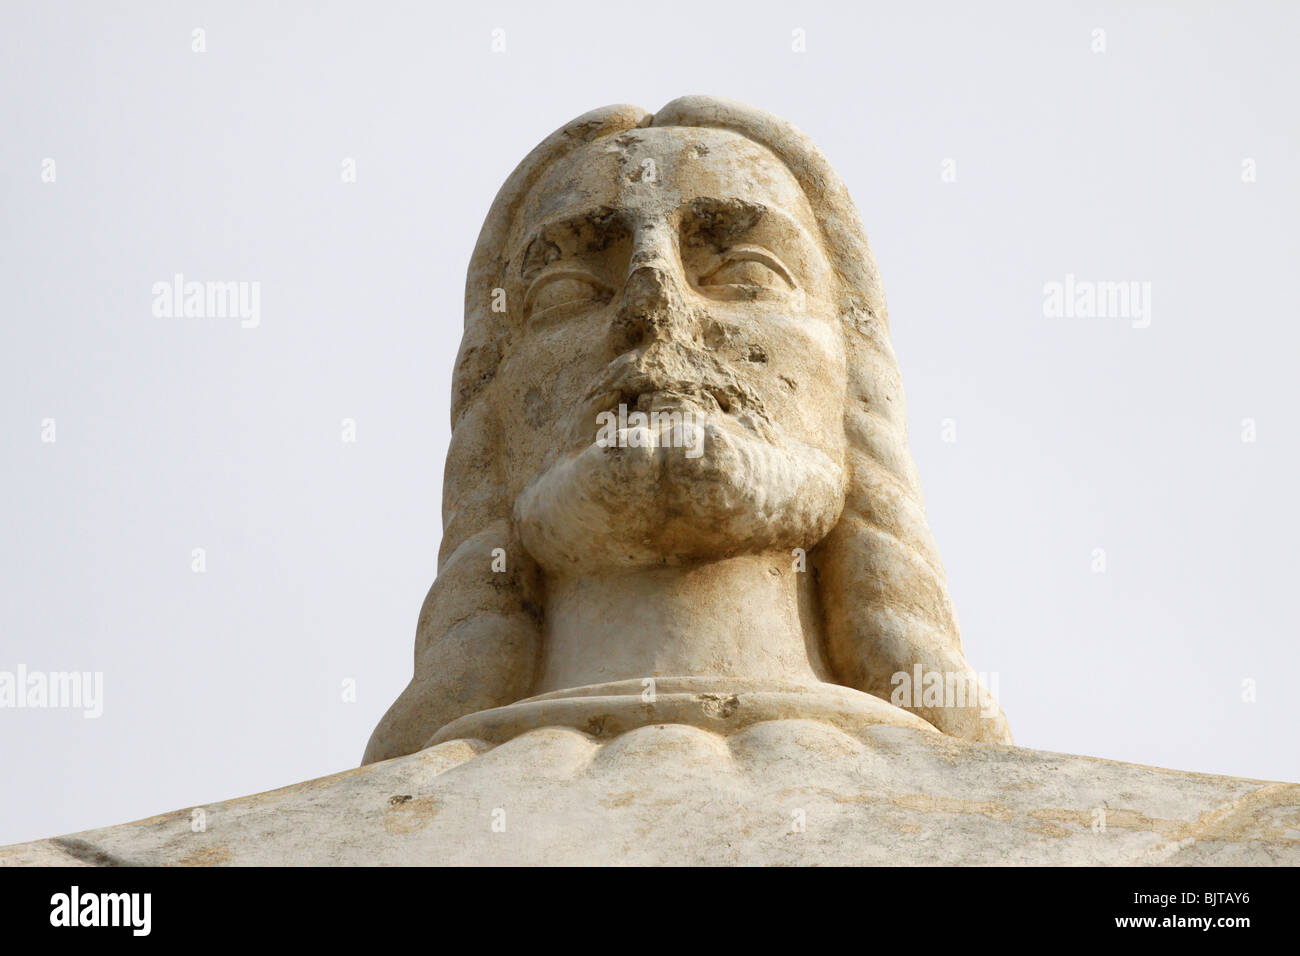 A close-up showing the war damage (bullet marks) to the Statue of Christ at Ponta do Lubango. Huila Province, Angola. - Stock Image